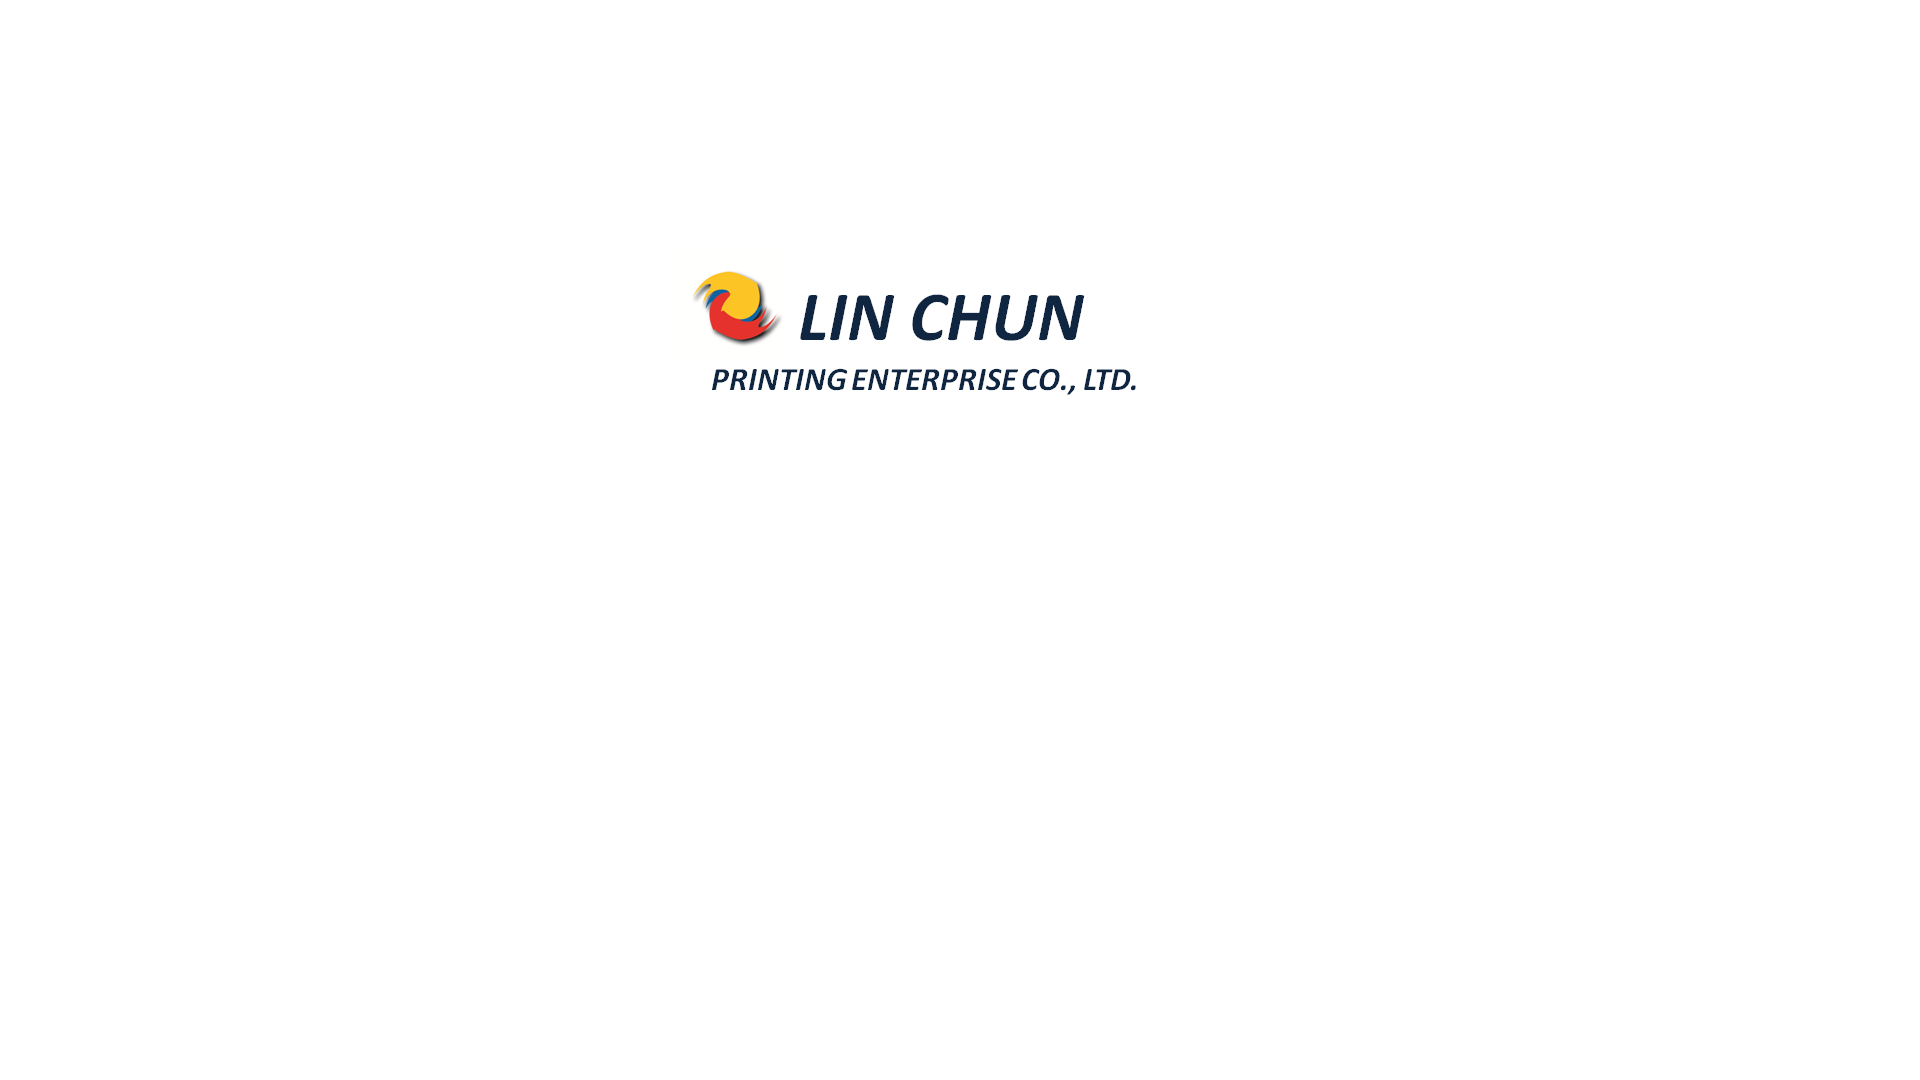 Linchun Printing Enterprise Video